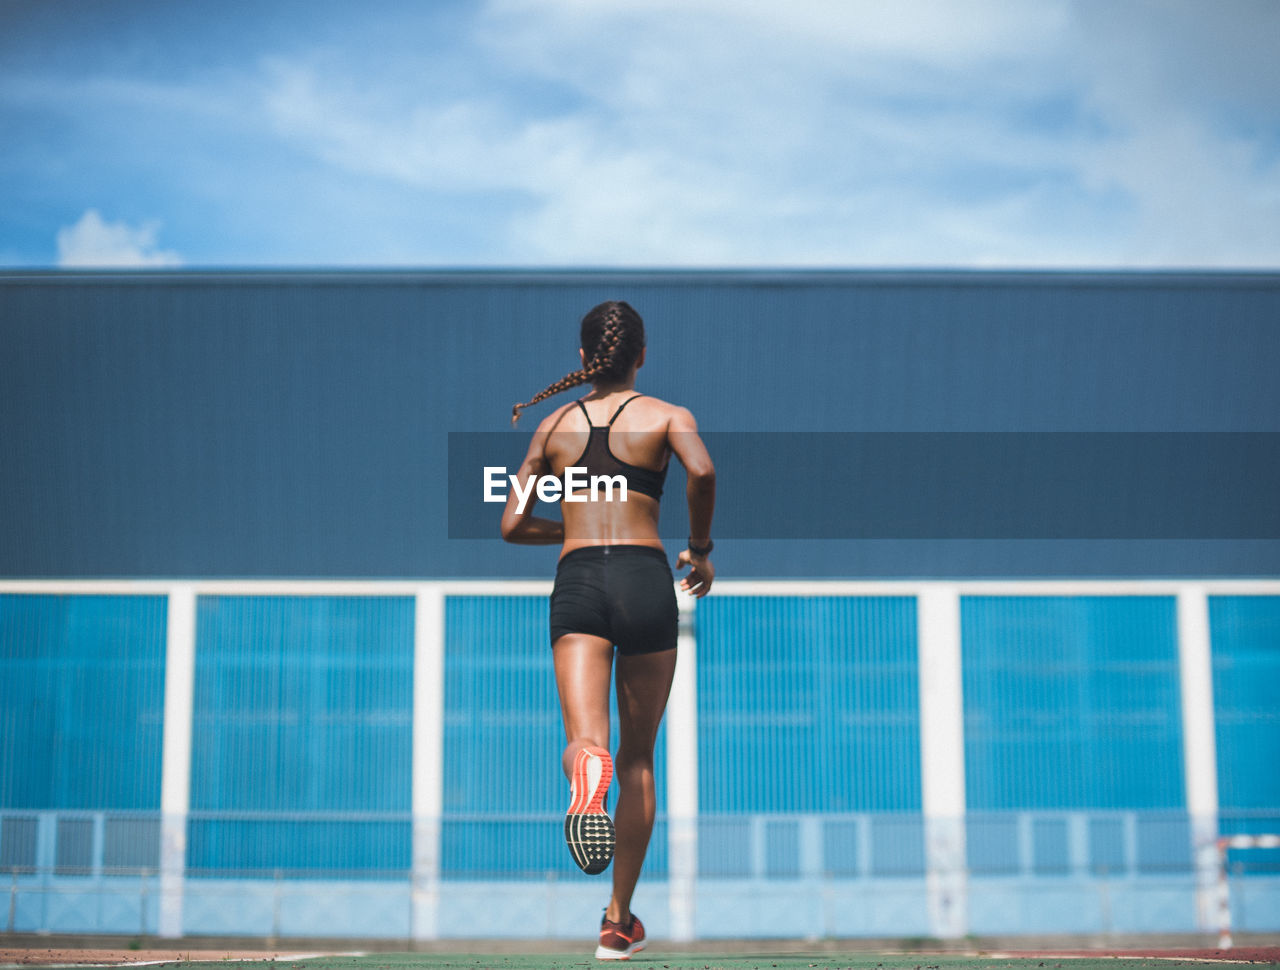 Rear View Of Woman Running On Playing Field